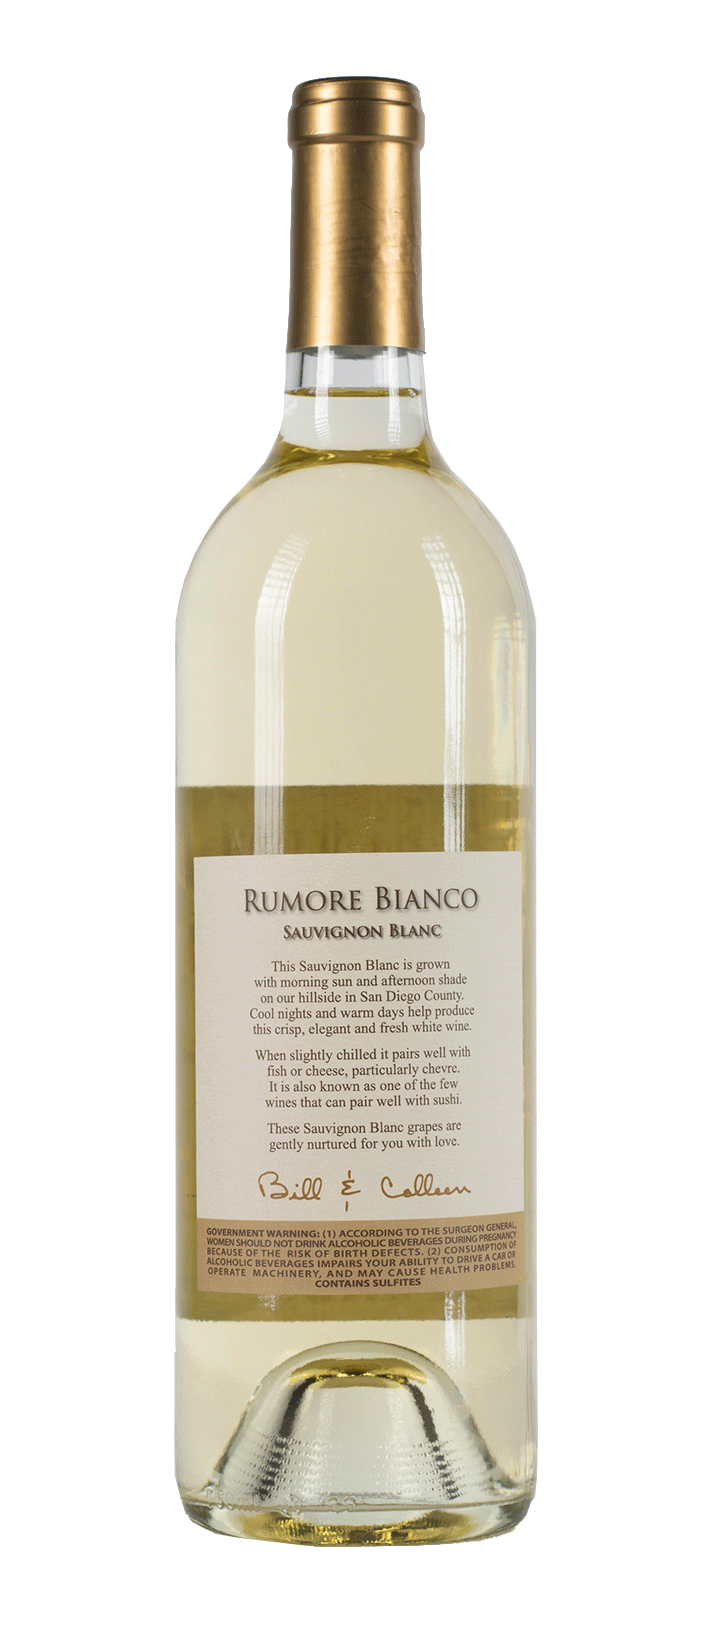 Rumore-Bianco-back.png